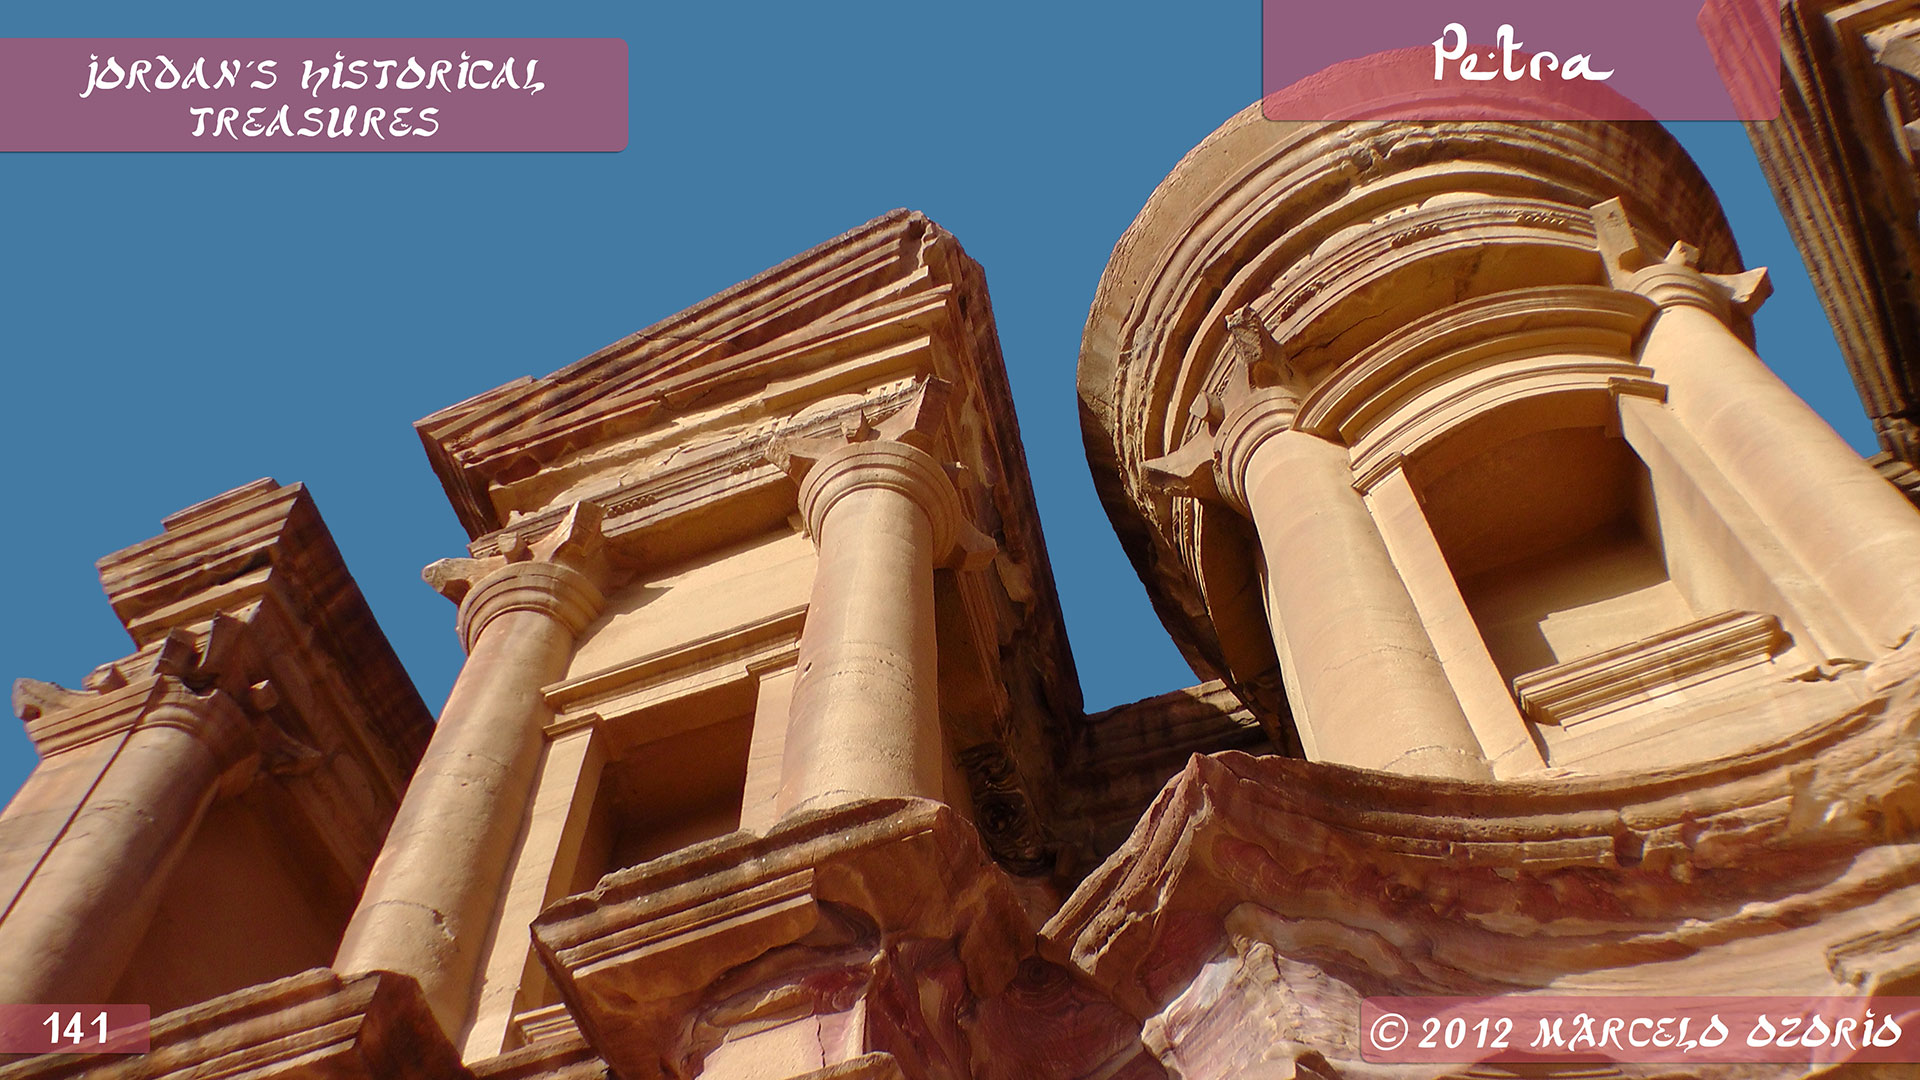 Petra Archaeological City Jordan 61 - The Astonishing Treasure at Petra - Jordan